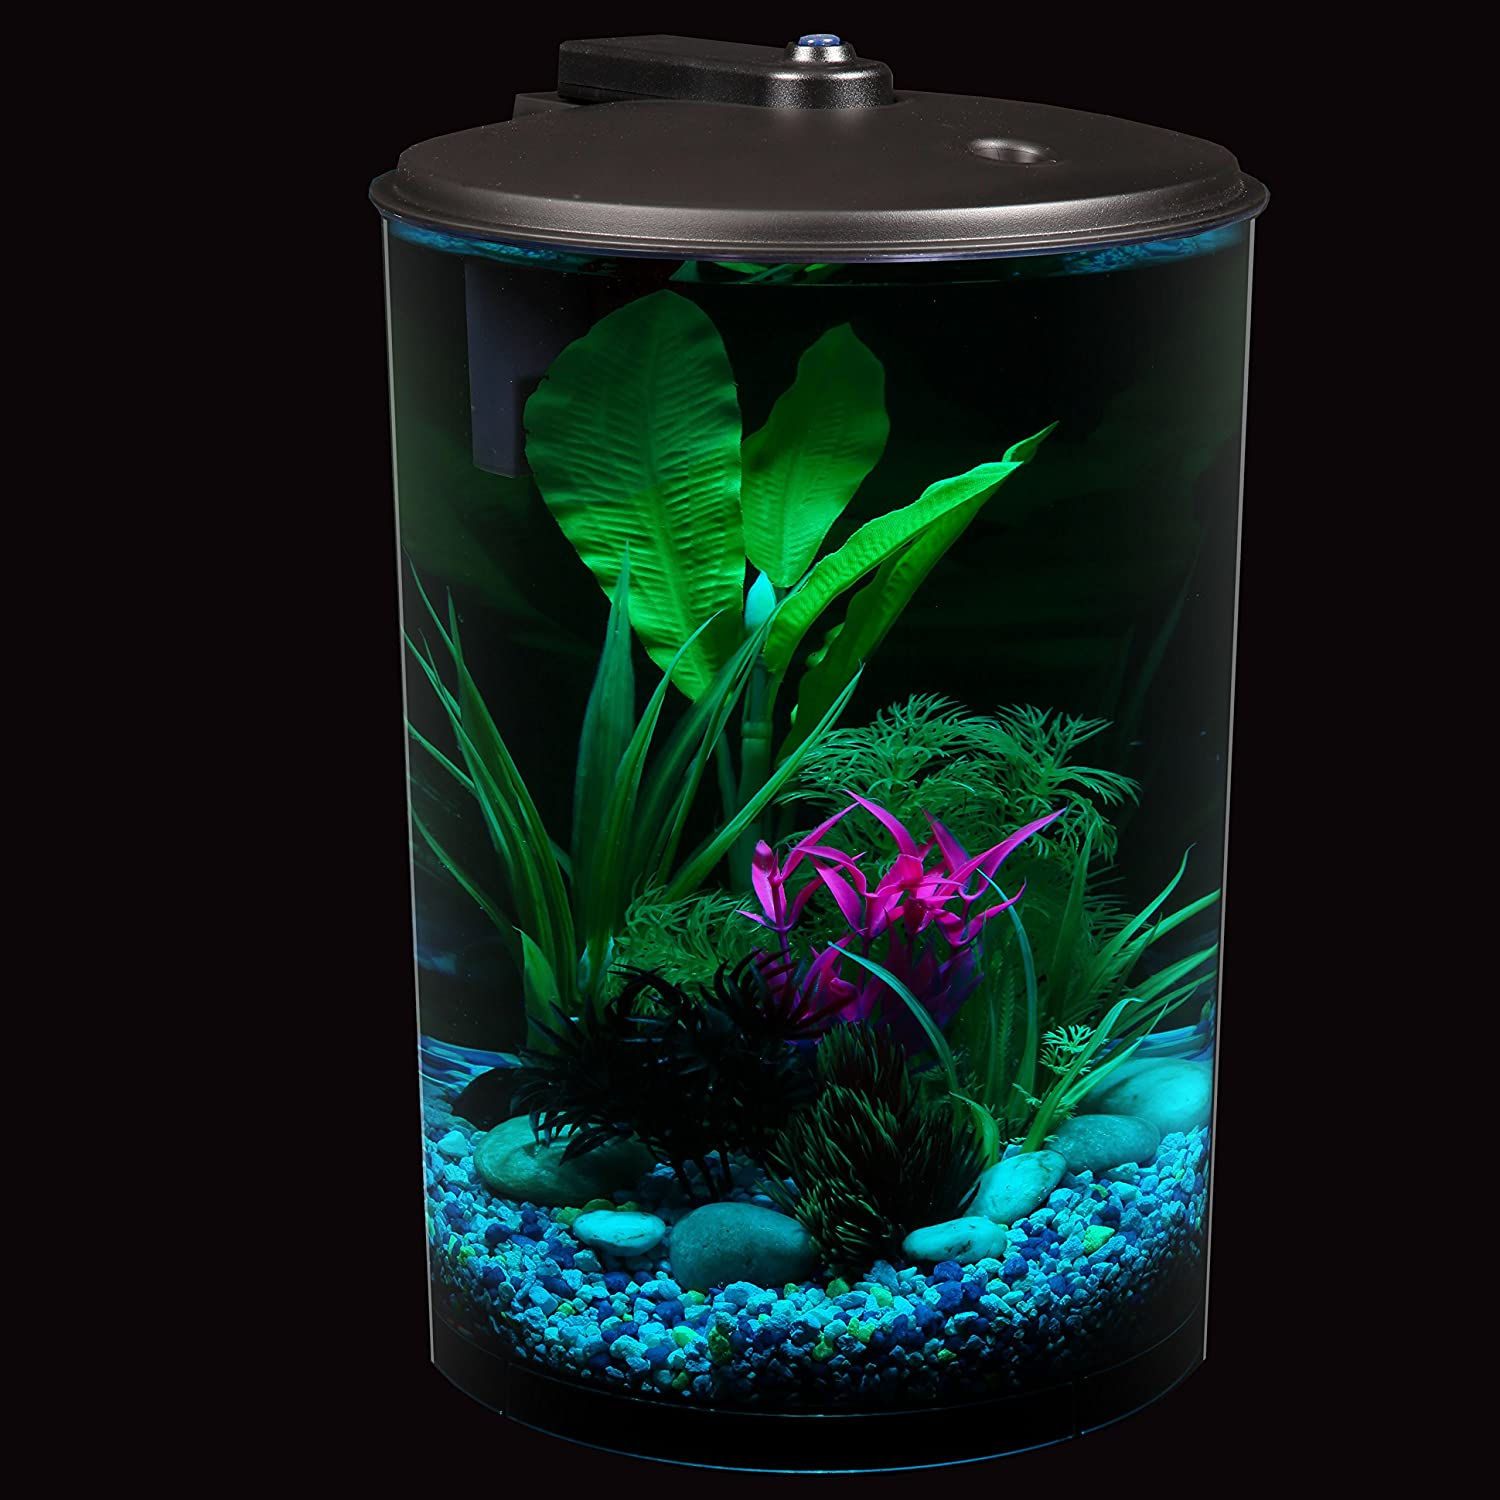 aquarium moonlights thing thought where led mine but white lights light the can same said dsc s new whole saint forums your m to this pretty bee blue threads still my too tup i moon bright